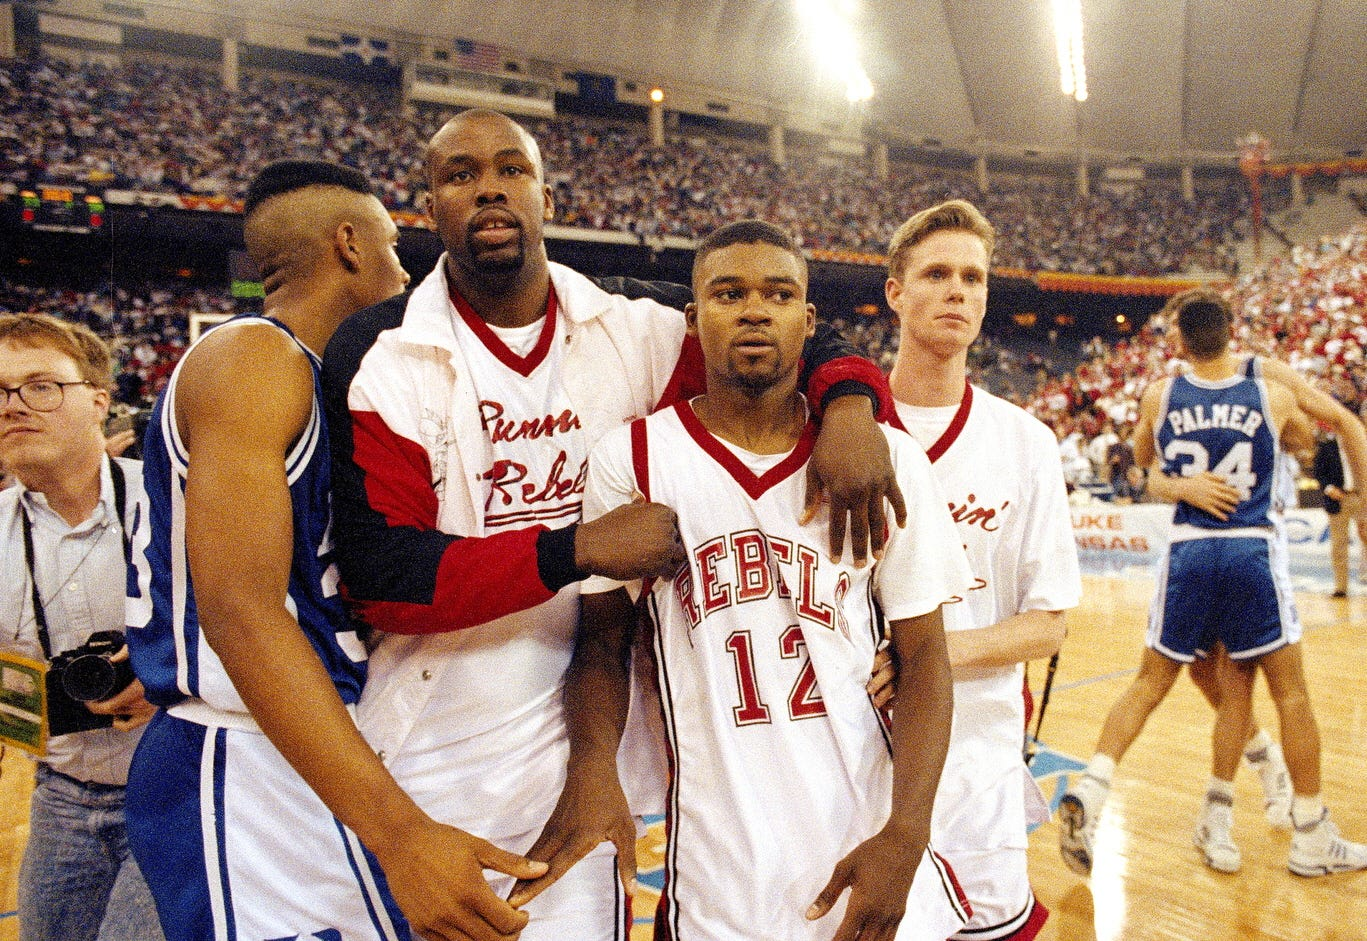 UNLV's Anderson Hunt (12) and teammates leave the floor after losing to Duke in the NCAA national semifinal game in 1991.